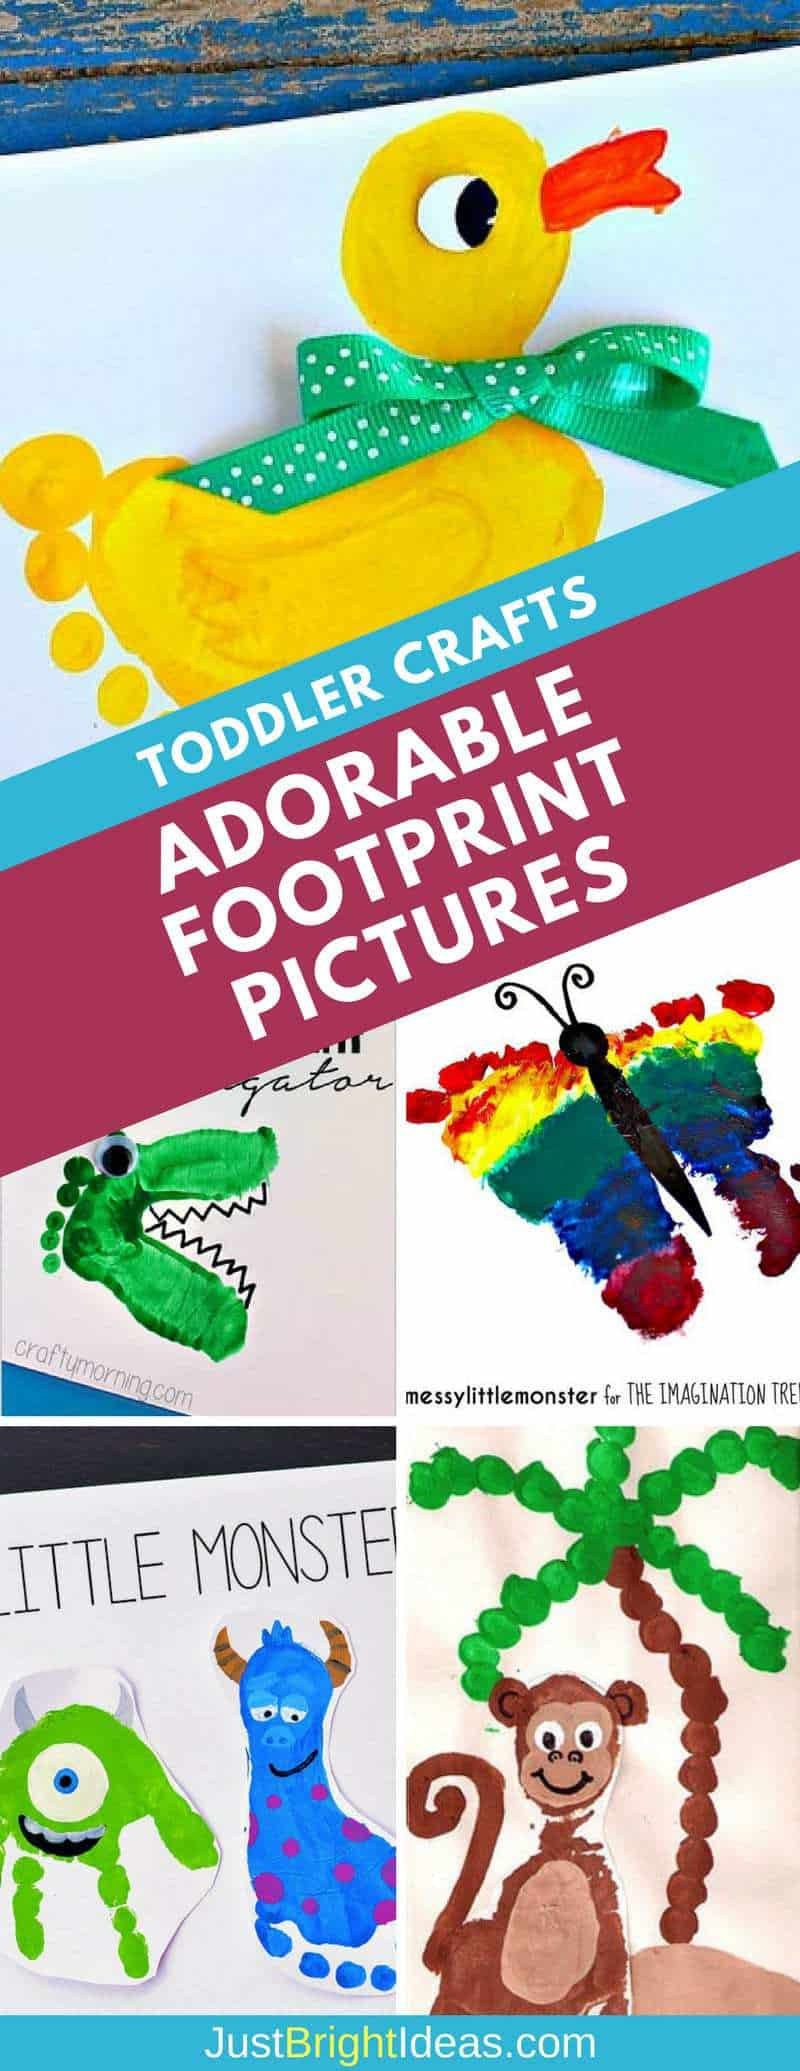 Footprint Crafts for Toddlers